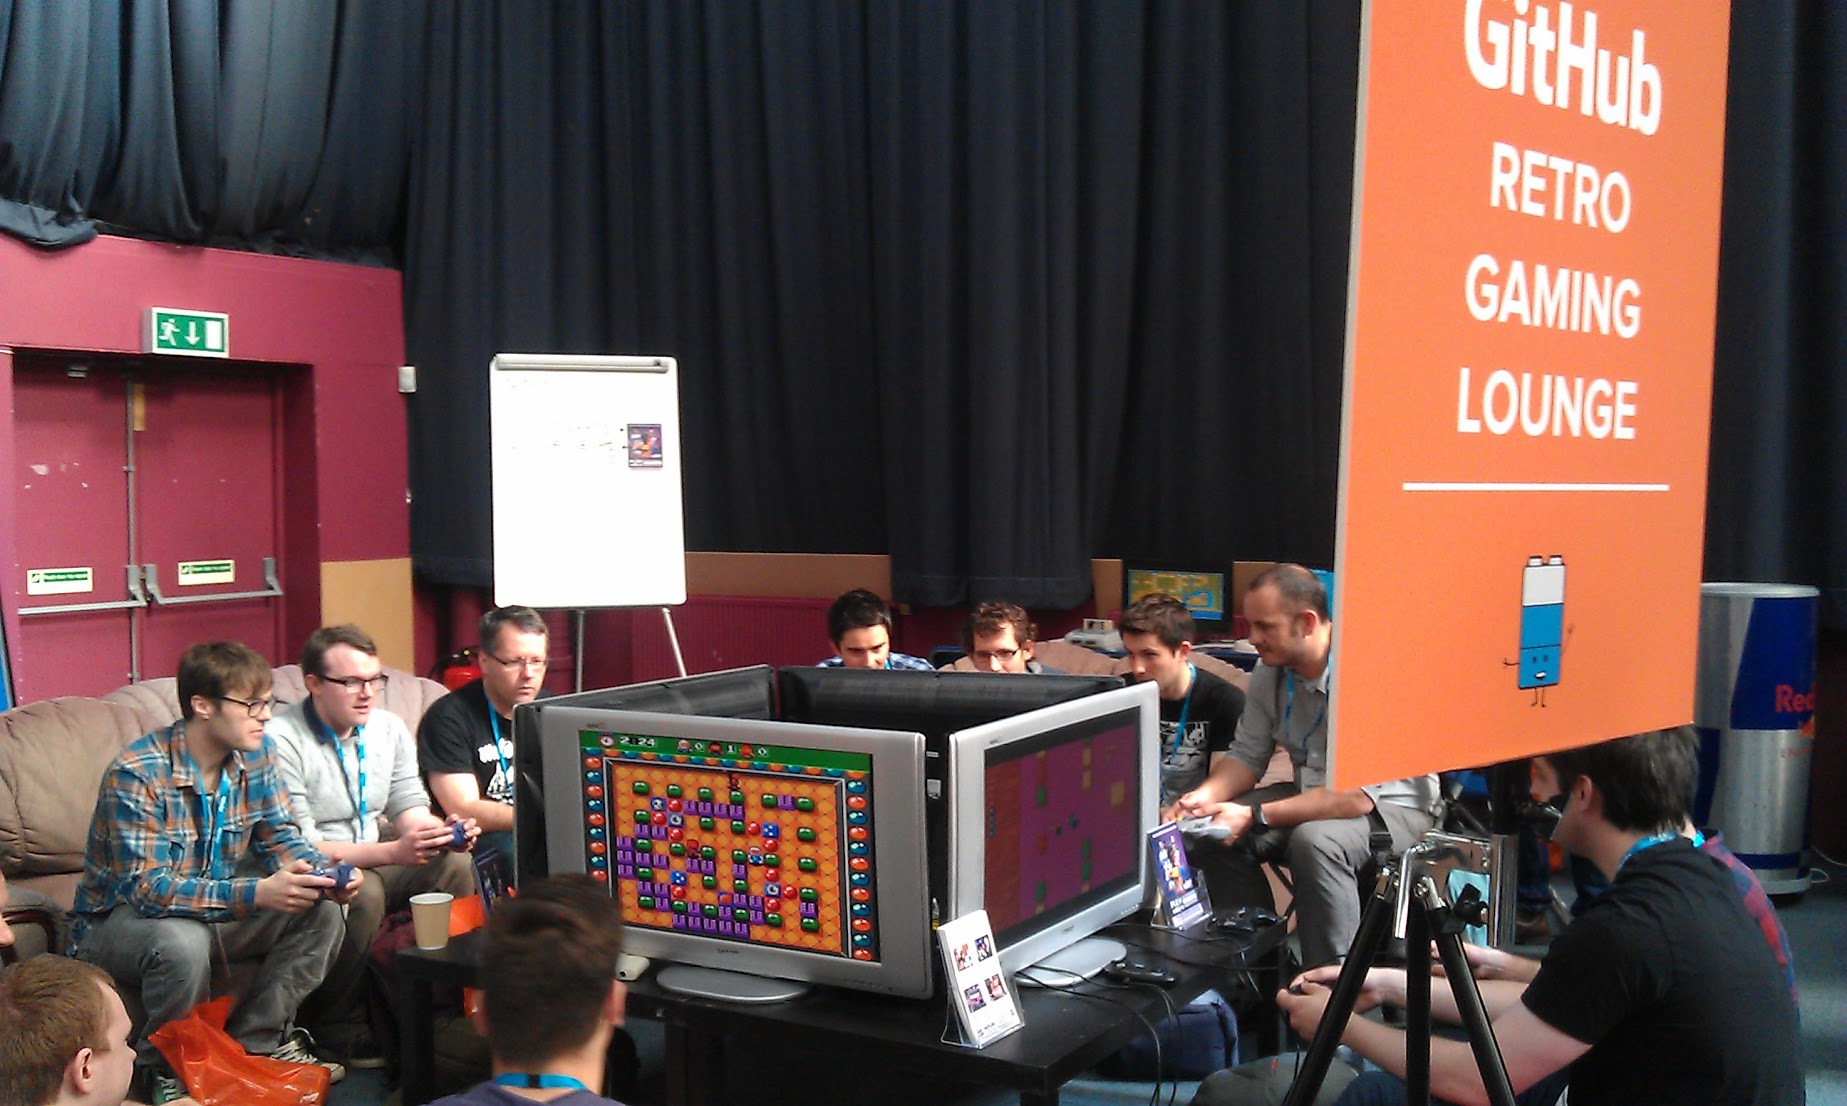 Nerdvana: the Retro Gaming lounge